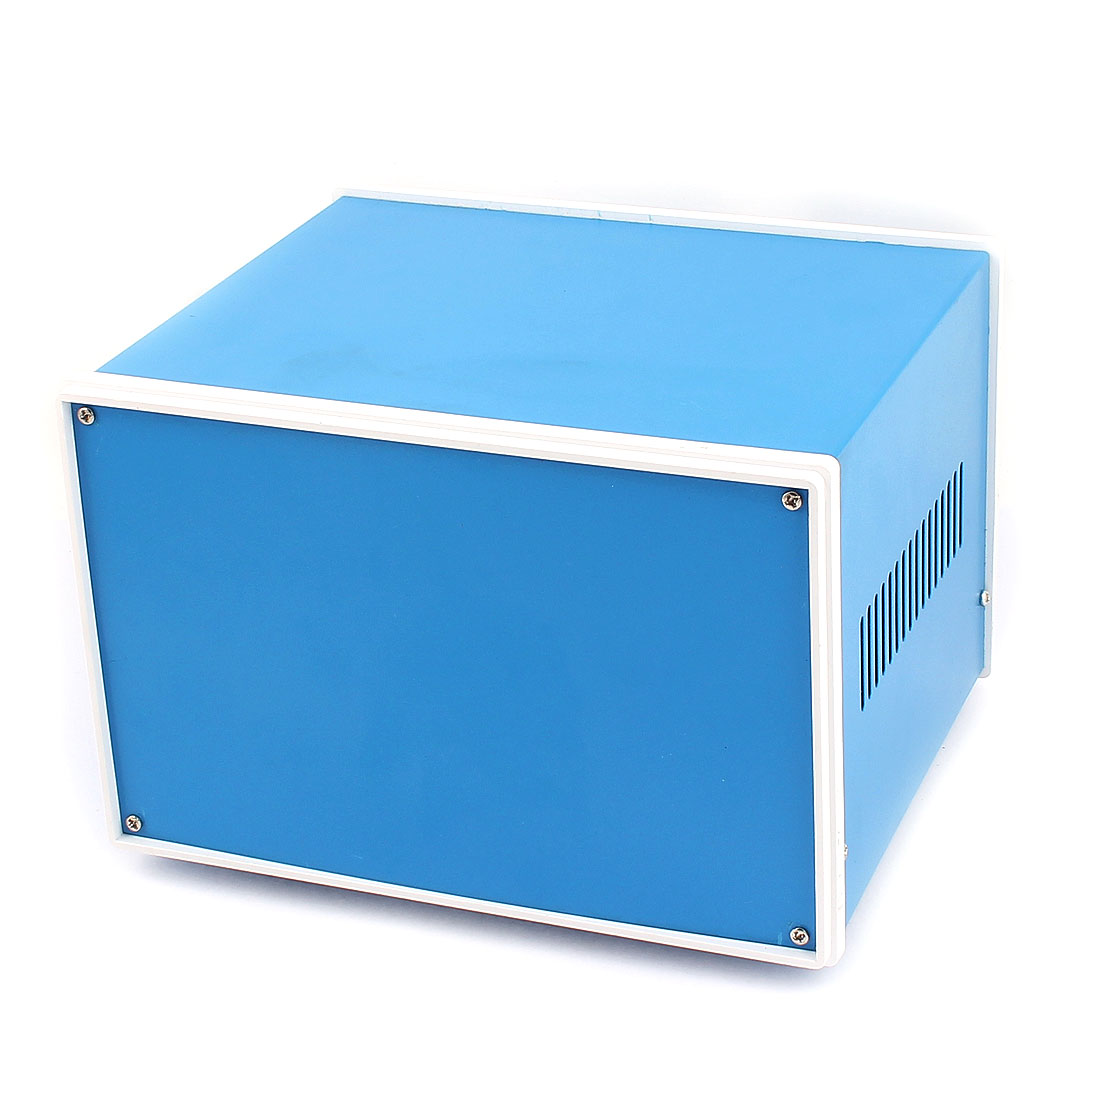 Metal Electronic Project Junction Box Enclosure Case Blue 202mm x 182mm x 132mm